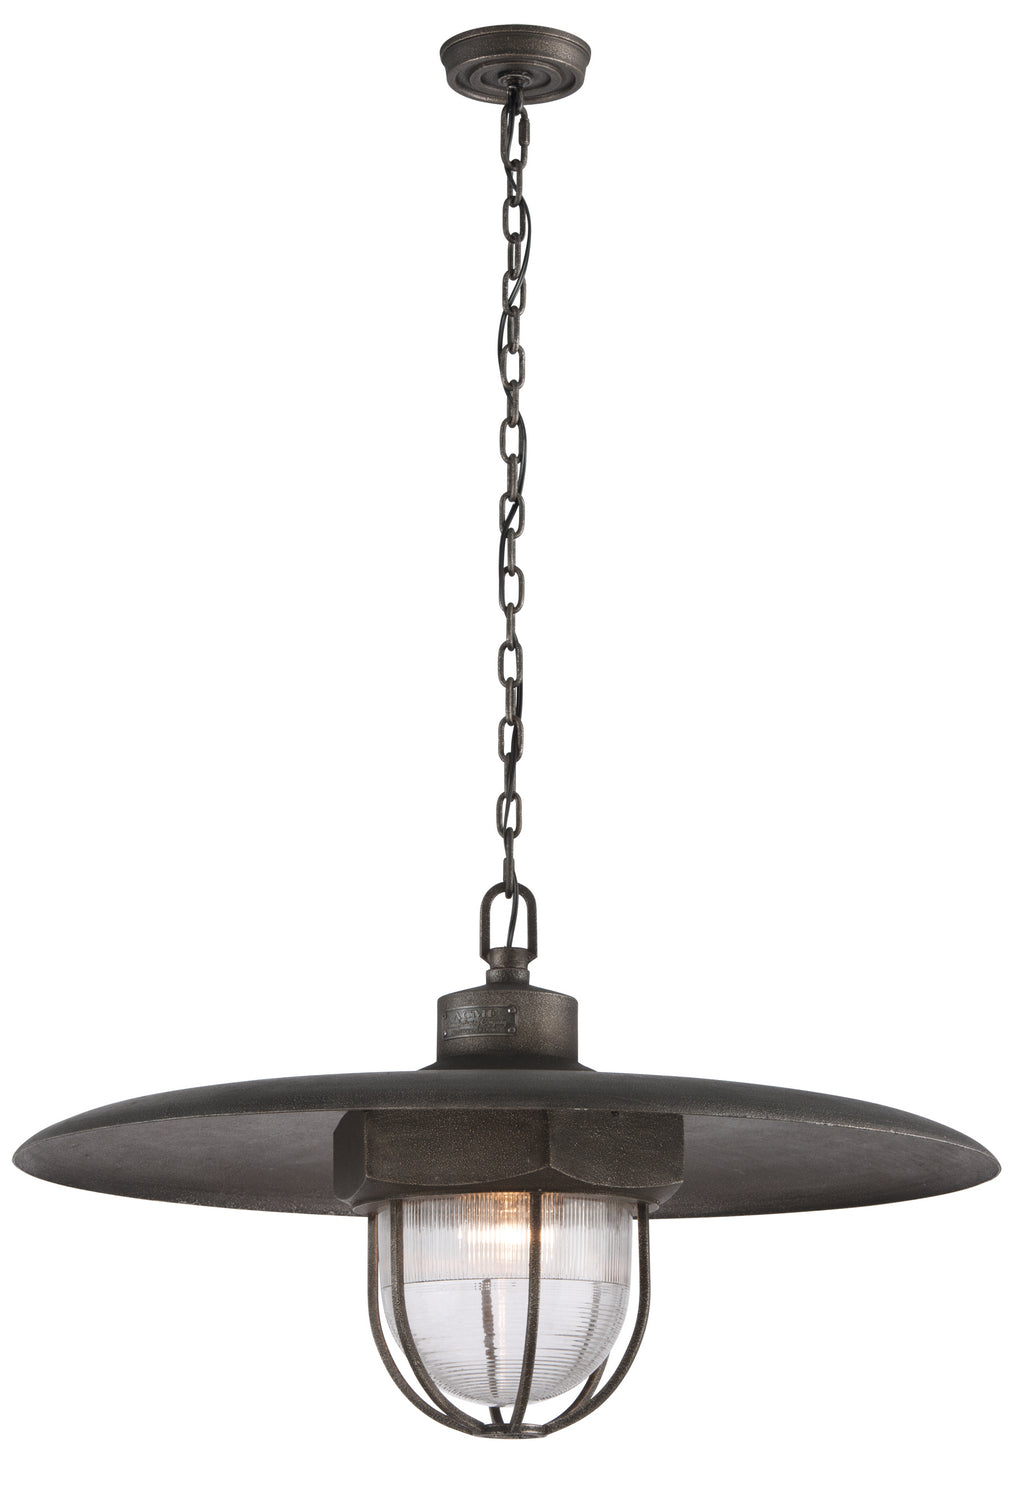 Acme Large Pendant by Troy Lighting